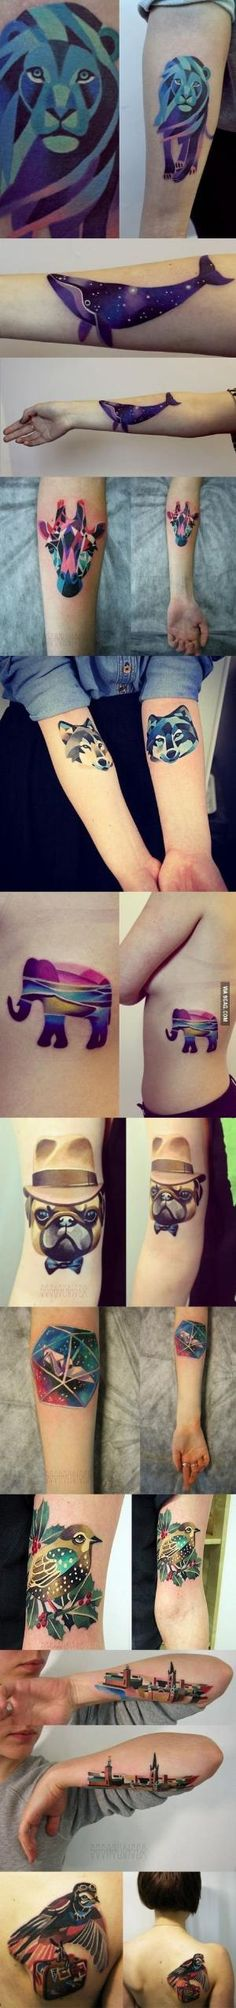 Pretty cool tattoos by Mel Scafidi